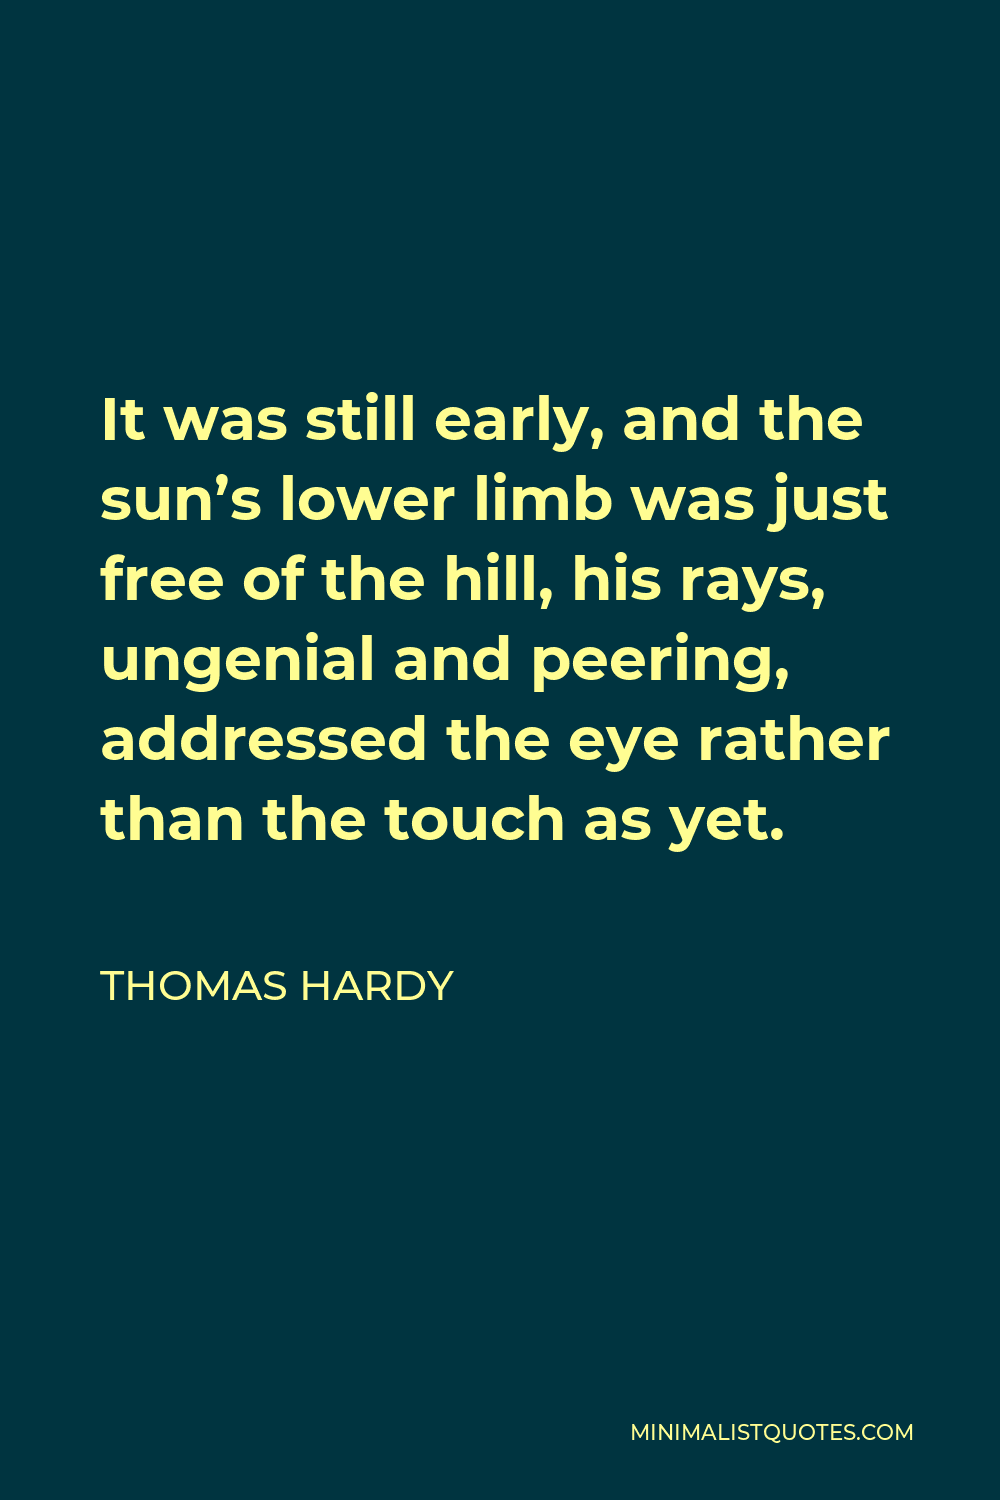 Thomas Hardy Quote - It was still early, and the sun's lower limb was just free of the hill, his rays, ungenial and peering, addressed the eye rather than the touch as yet.